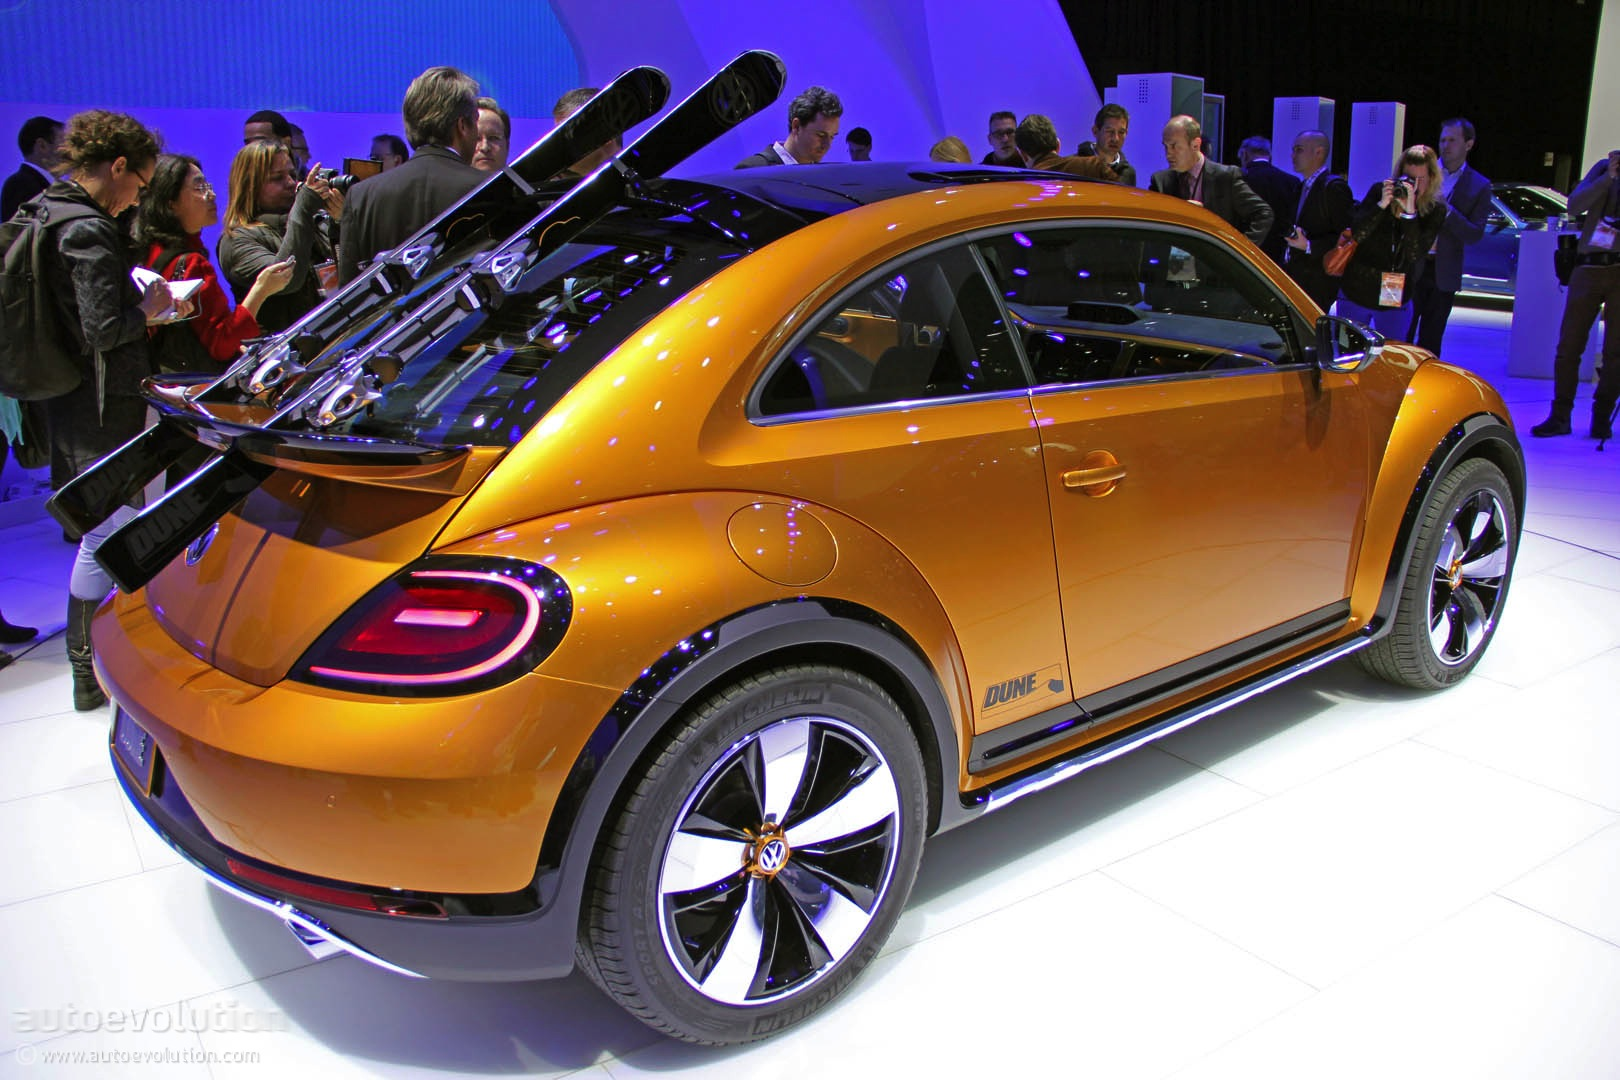 Vw Beetle Dune Concept Is An Alltrack Bug Live Photos